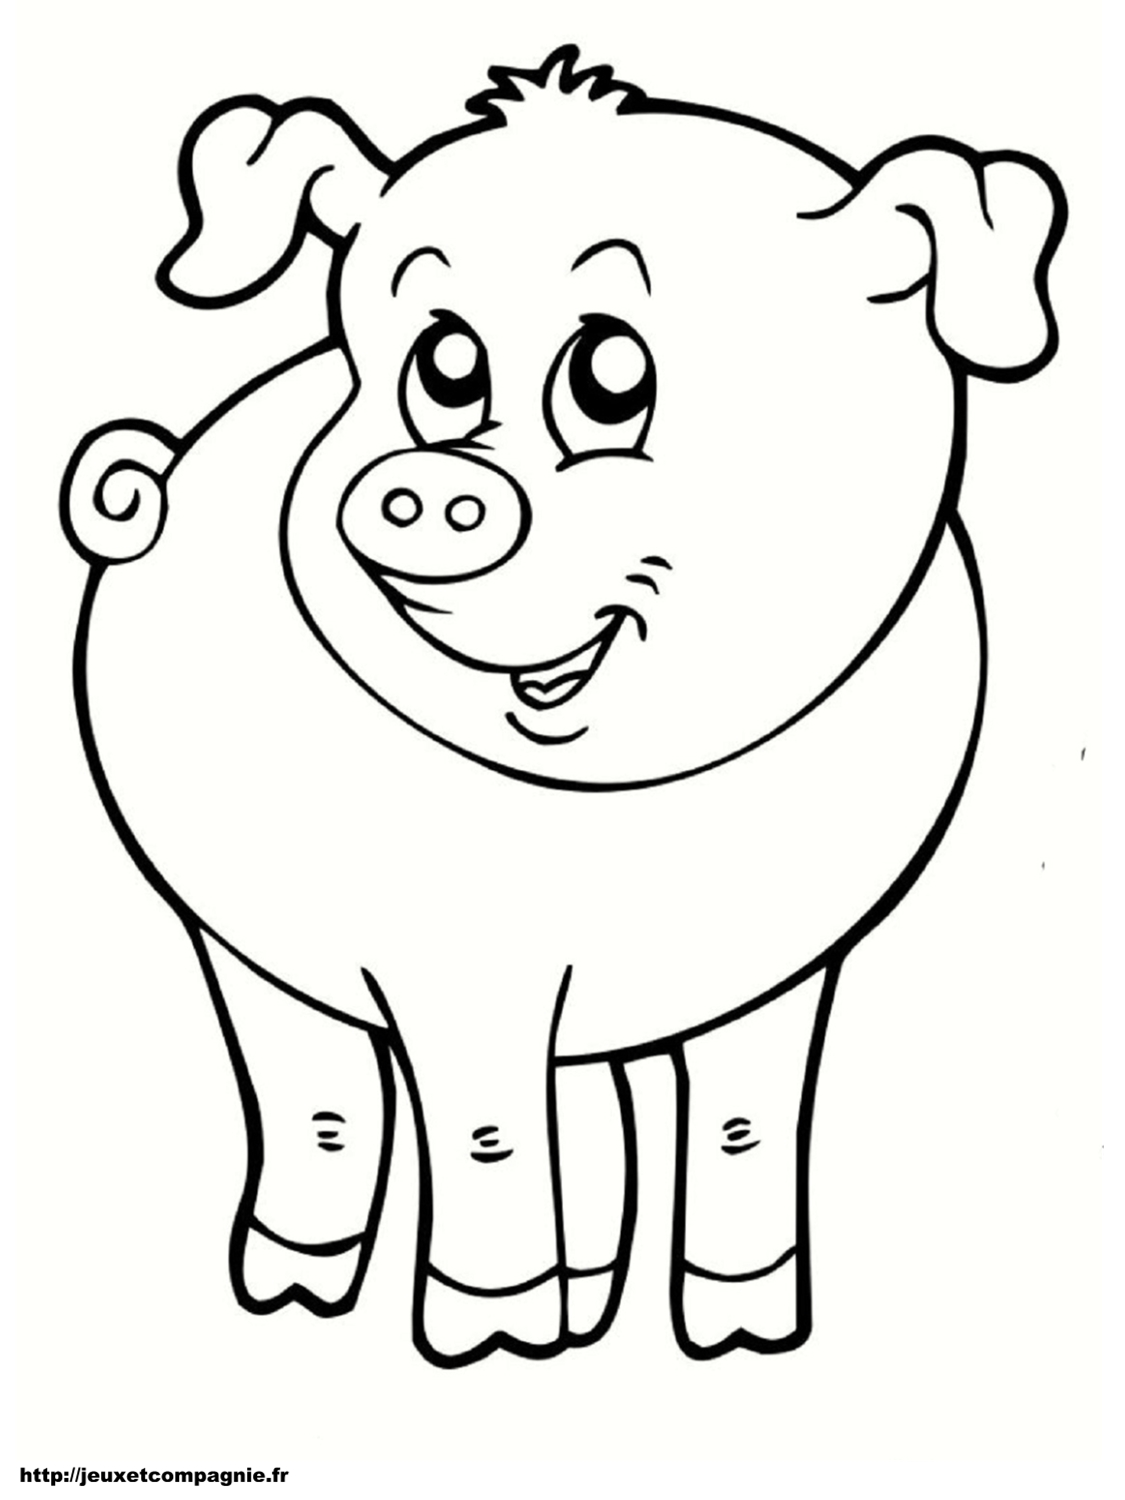 Coloriages animaux de la ferme - Coloriages a colorier ...